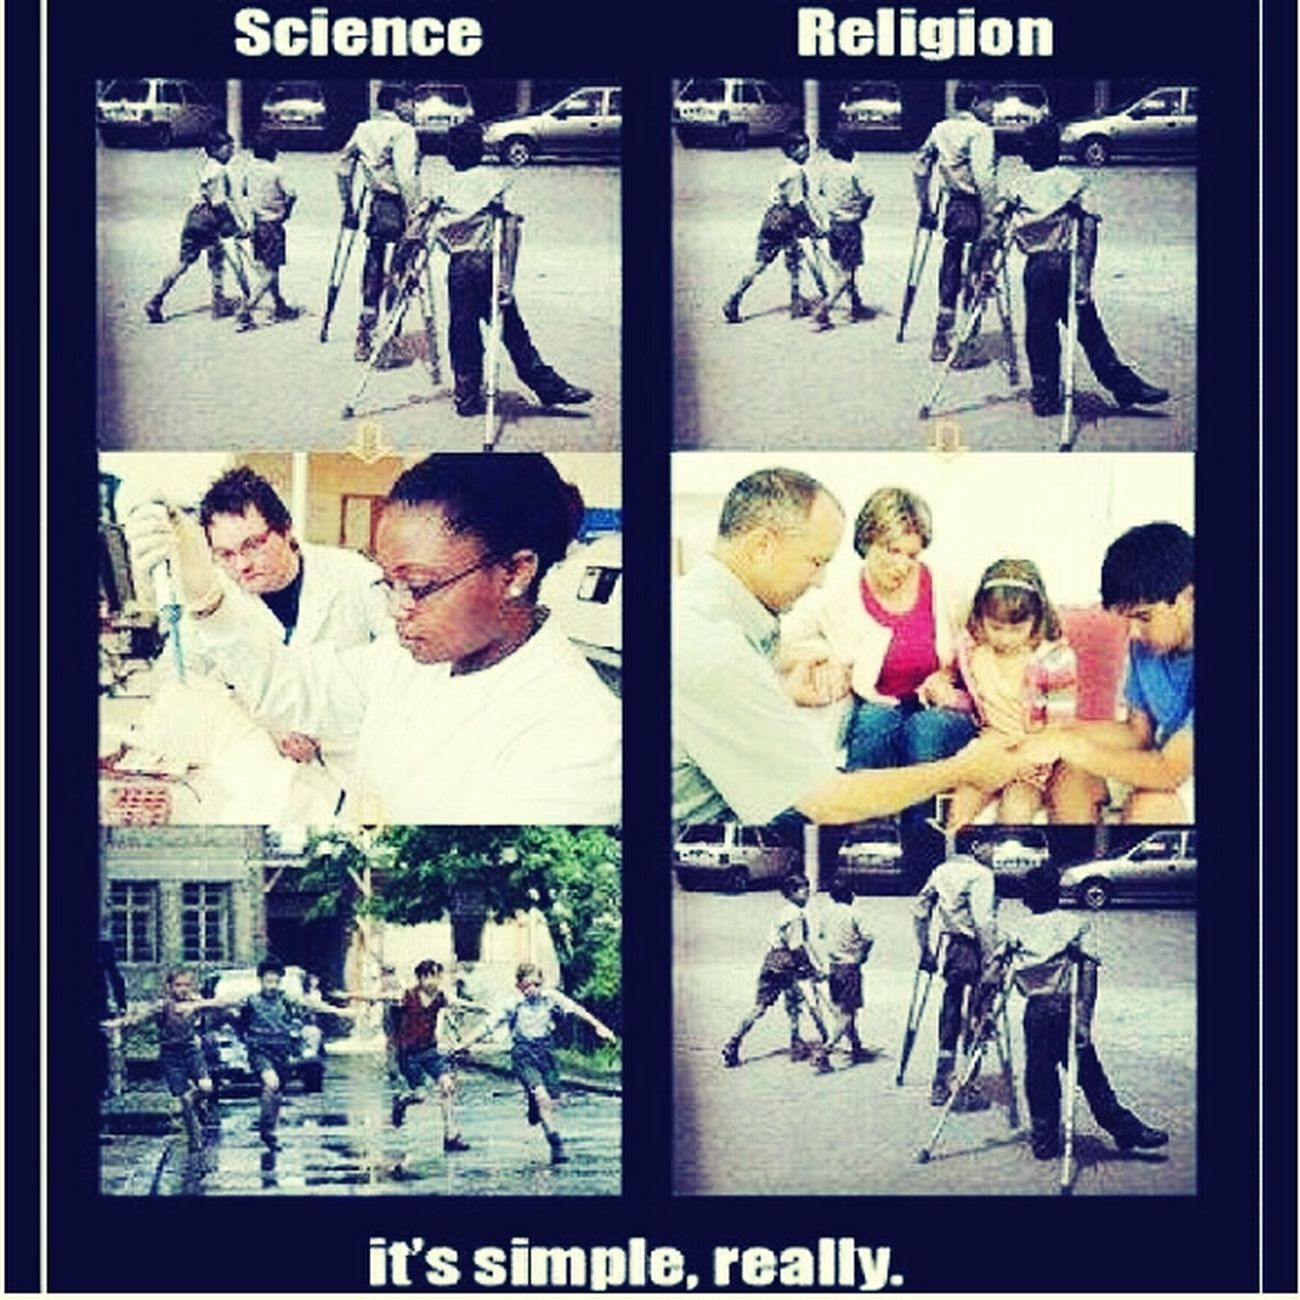 apprenetly more good has come from science . Upcoming Athiests No God Athiest Athiesm